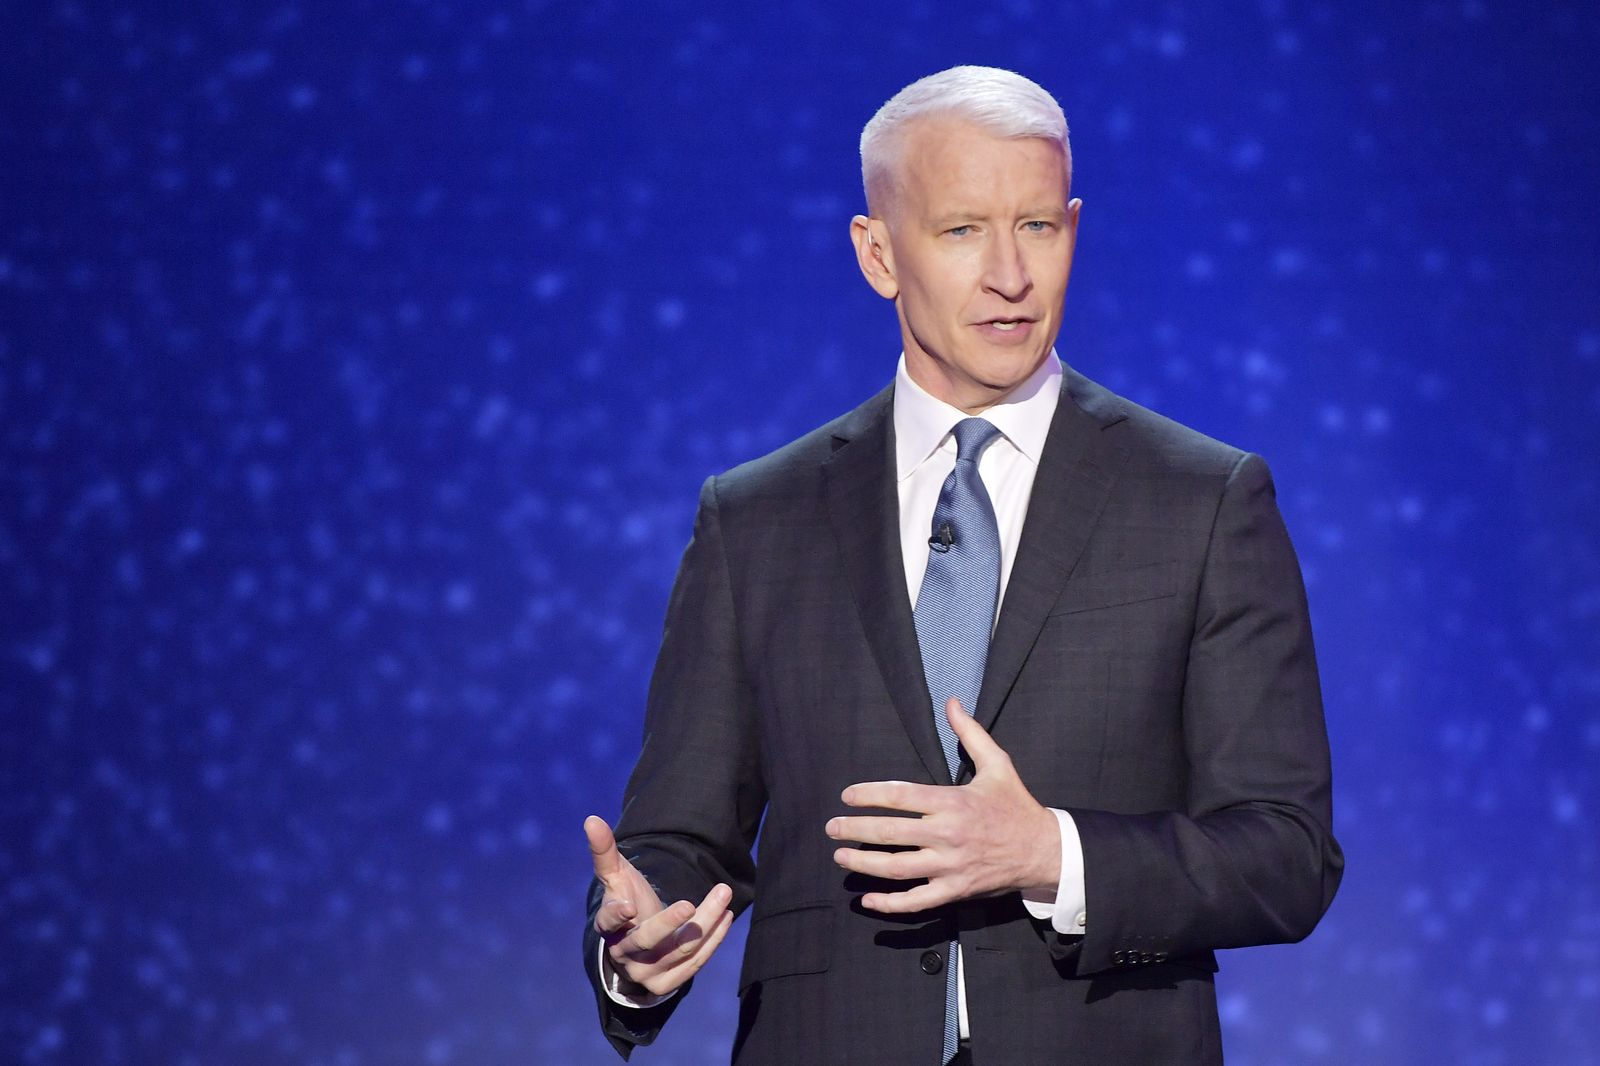 Anderson Cooper during the 12th Annual CNN Heroes: An All-Star Tribute on December 9, 2018, in New York City | Photo: Michael Loccisano/Getty Images